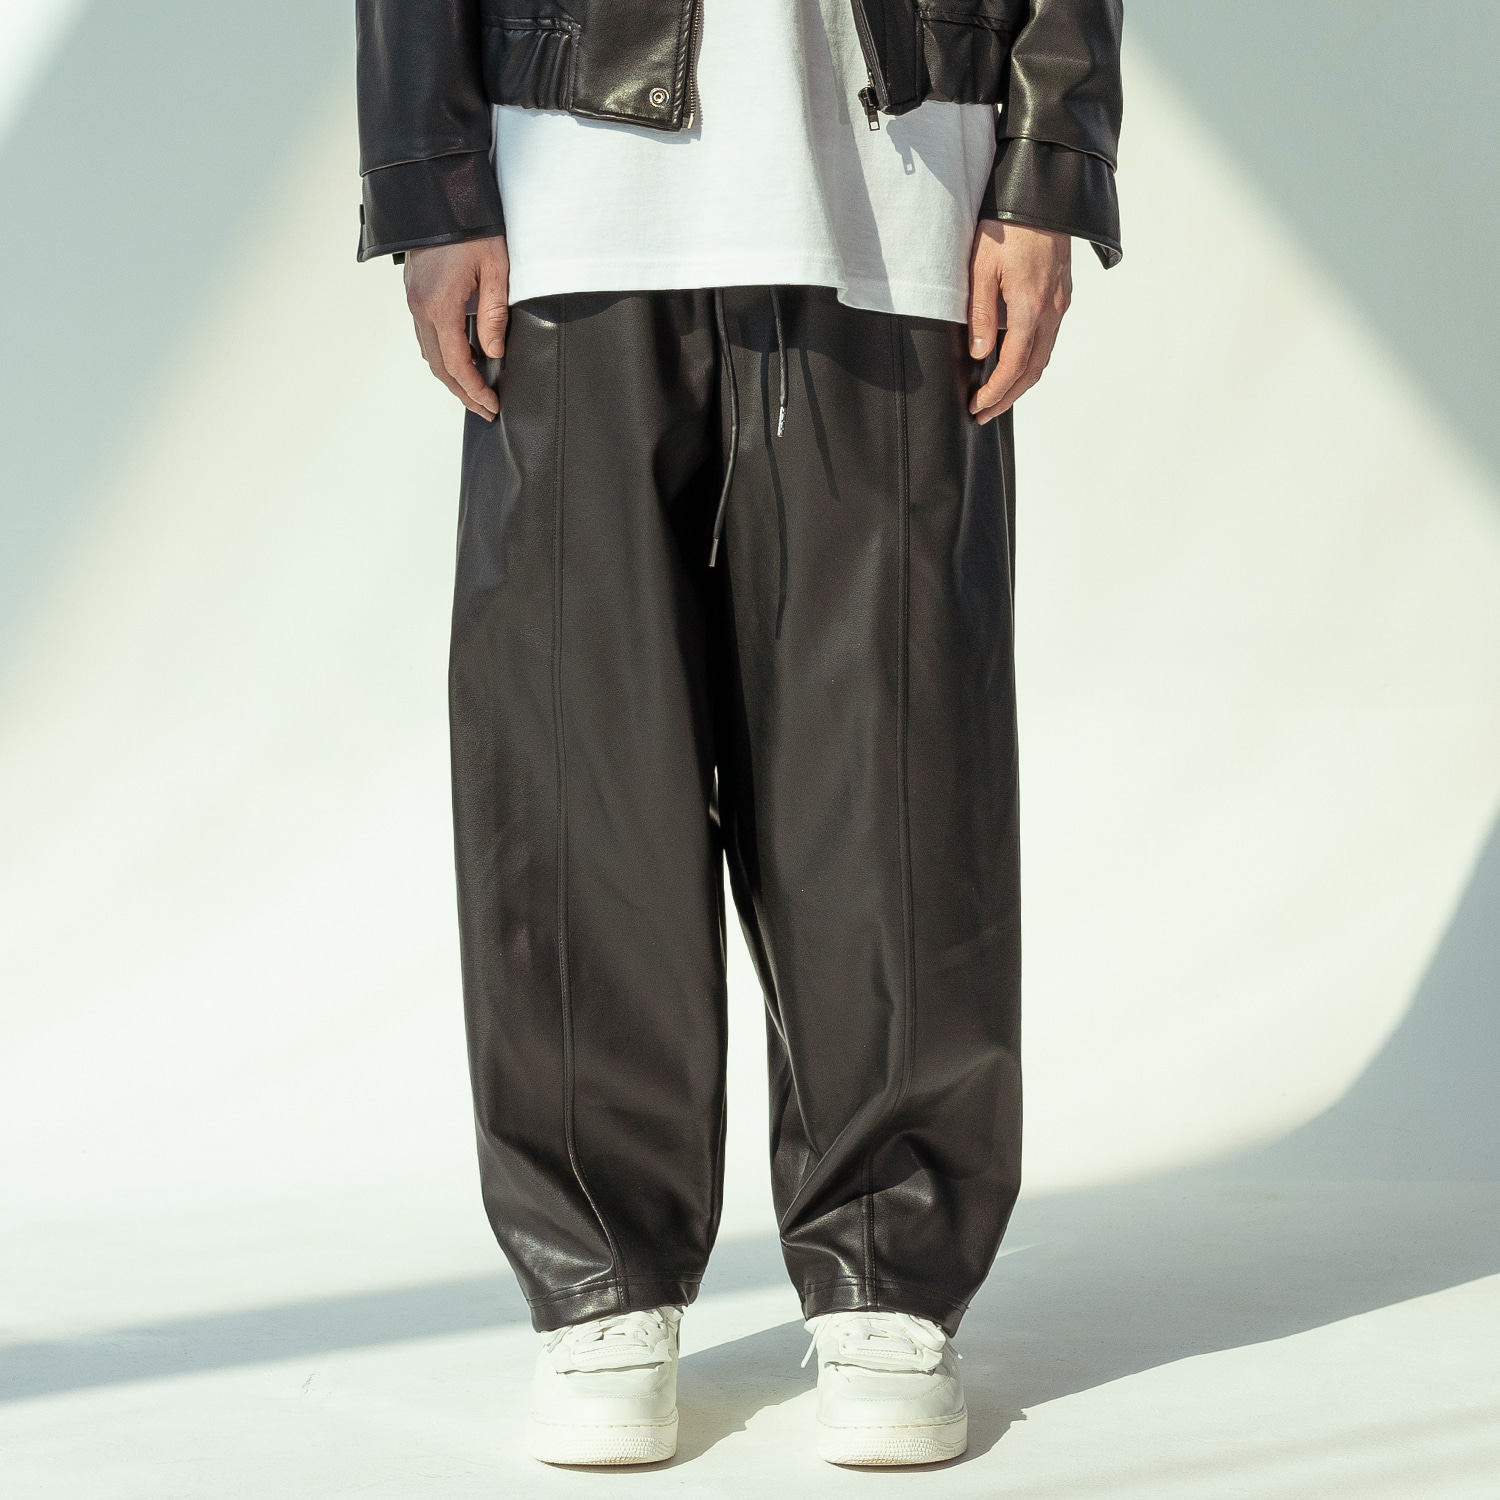 ARTIFICIAL LEATHER PANTS MSOLP001-BK